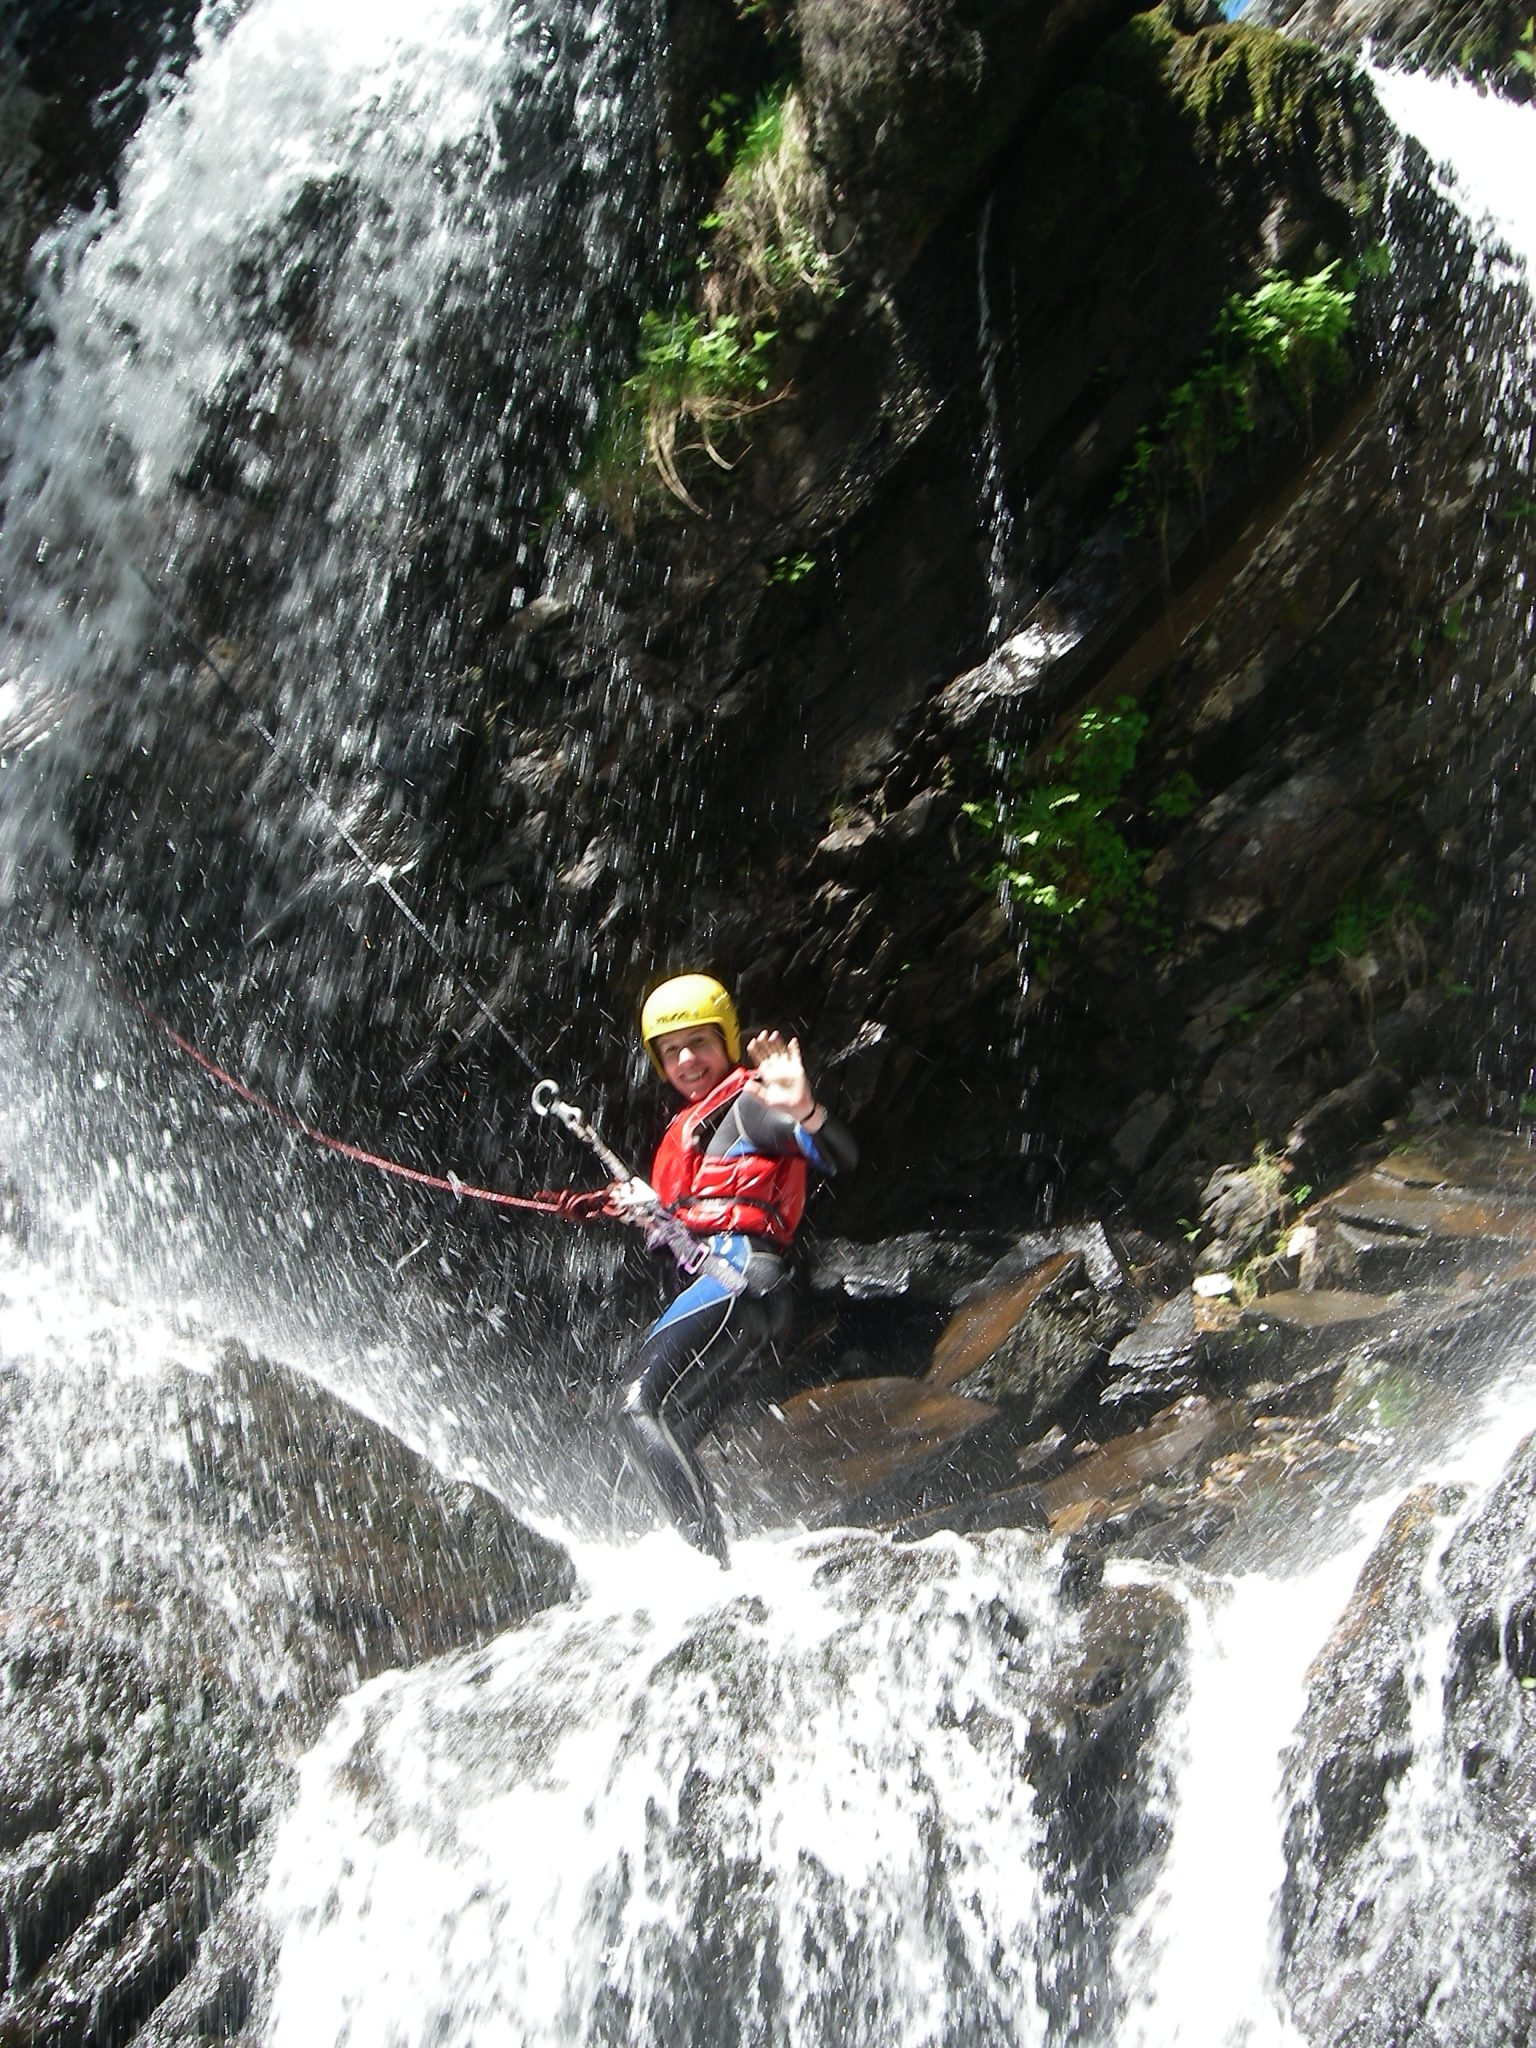 Canyoning Active Outdoors Pursuits Ltd